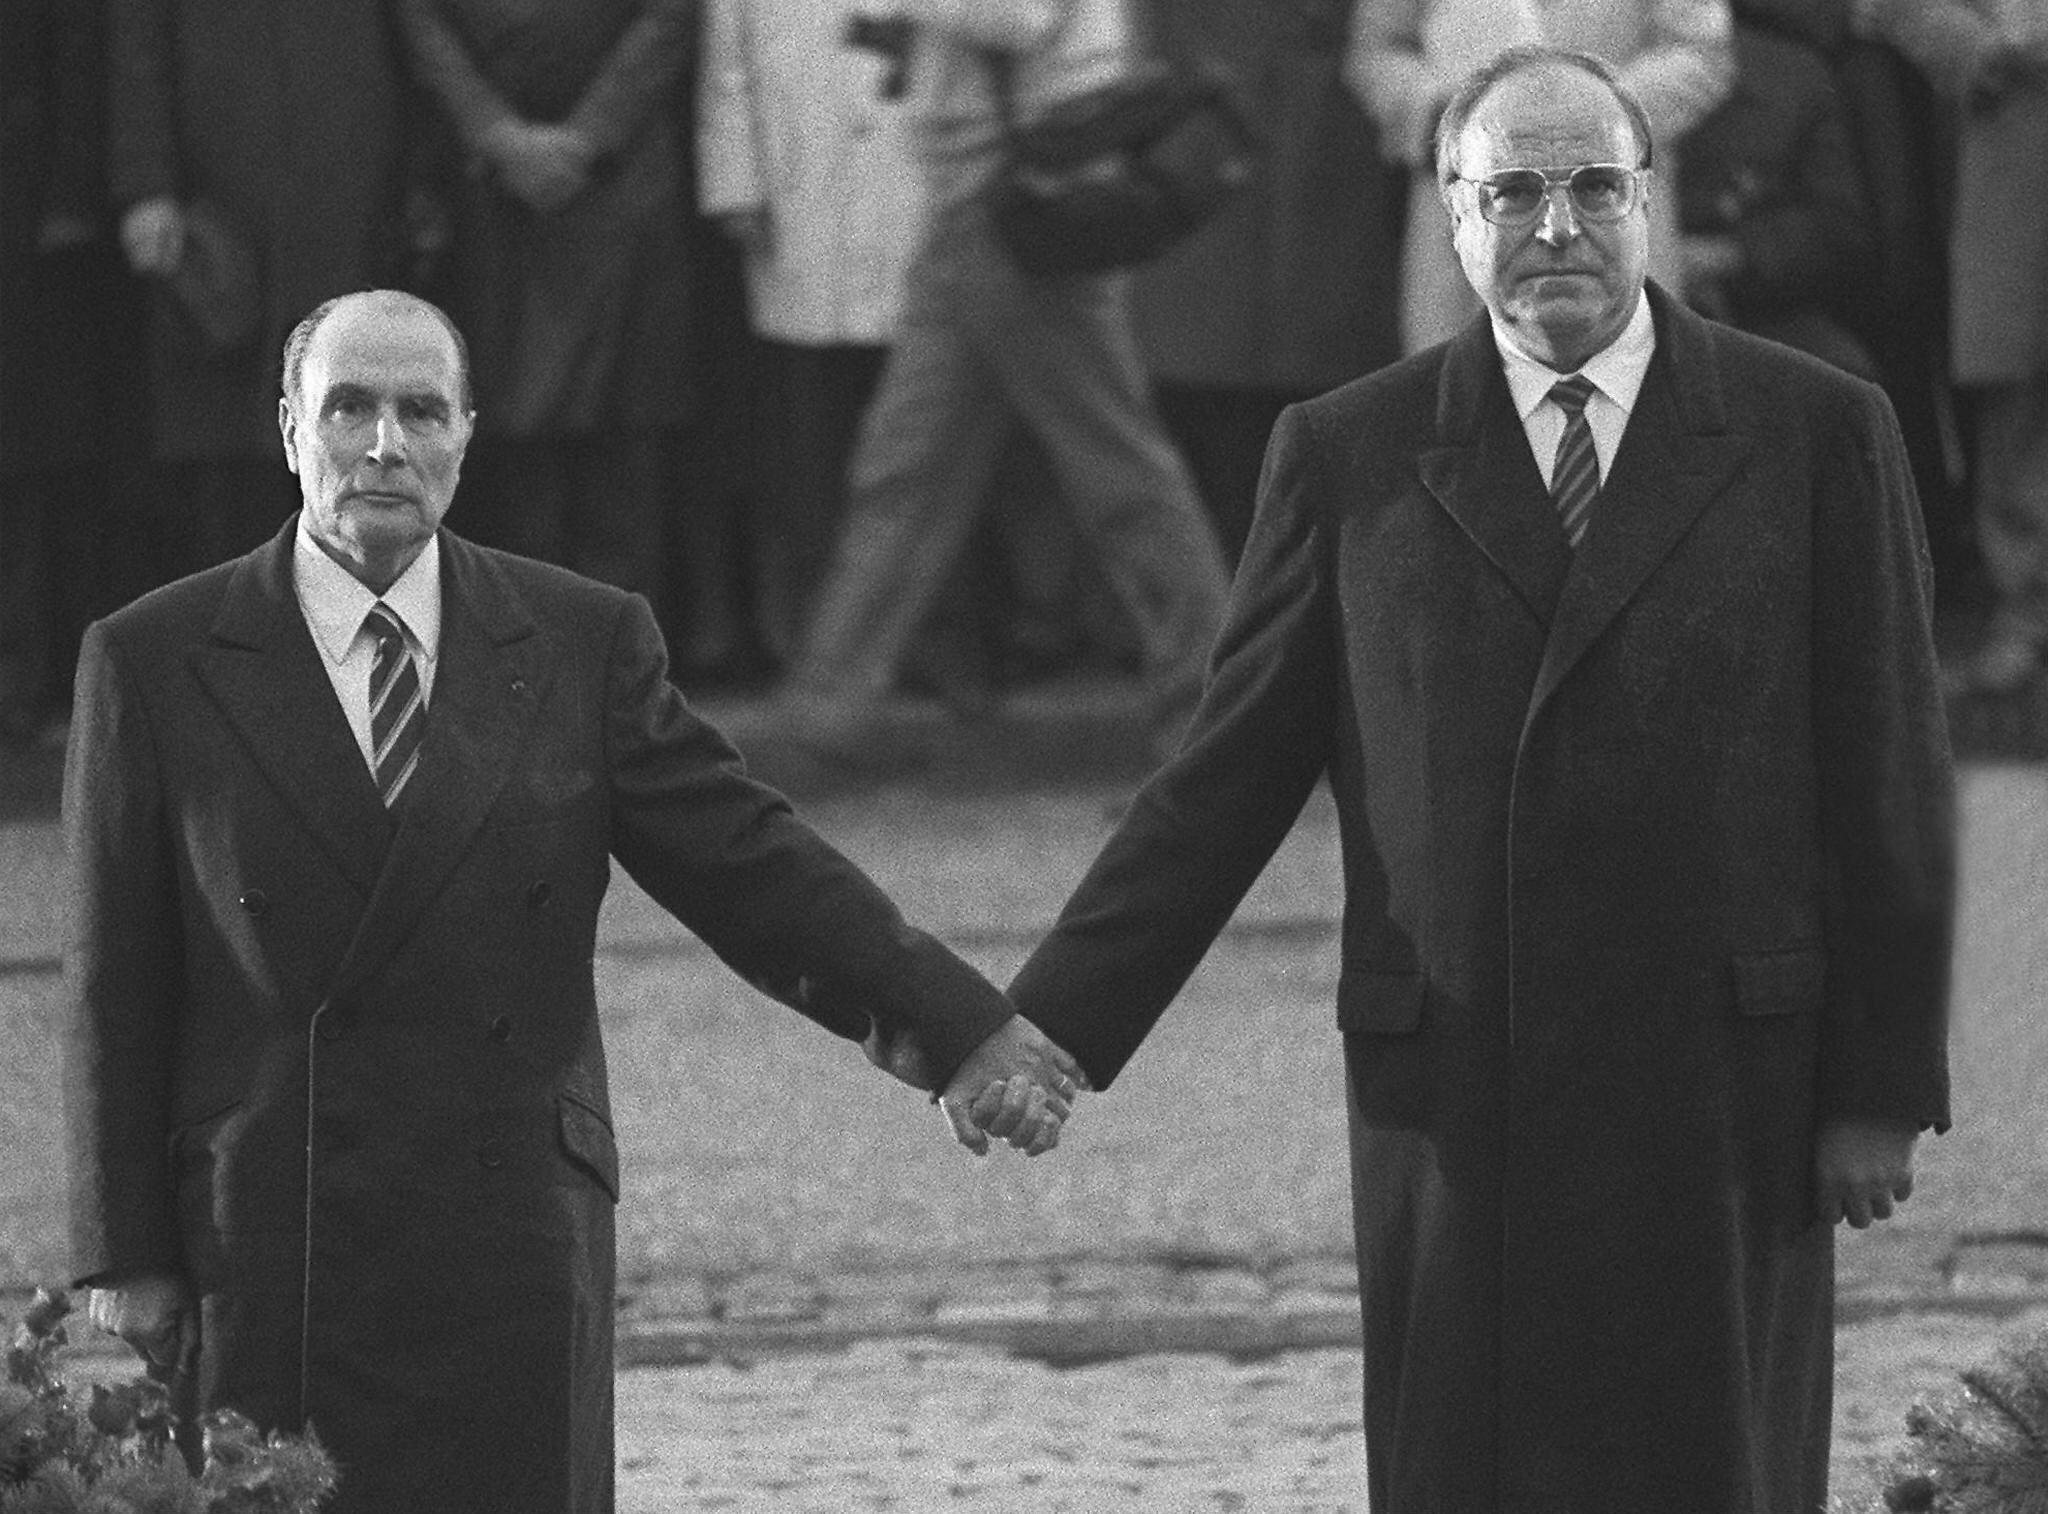 Helmut Kohl, Germany's reunification chancellor, dies aged 87